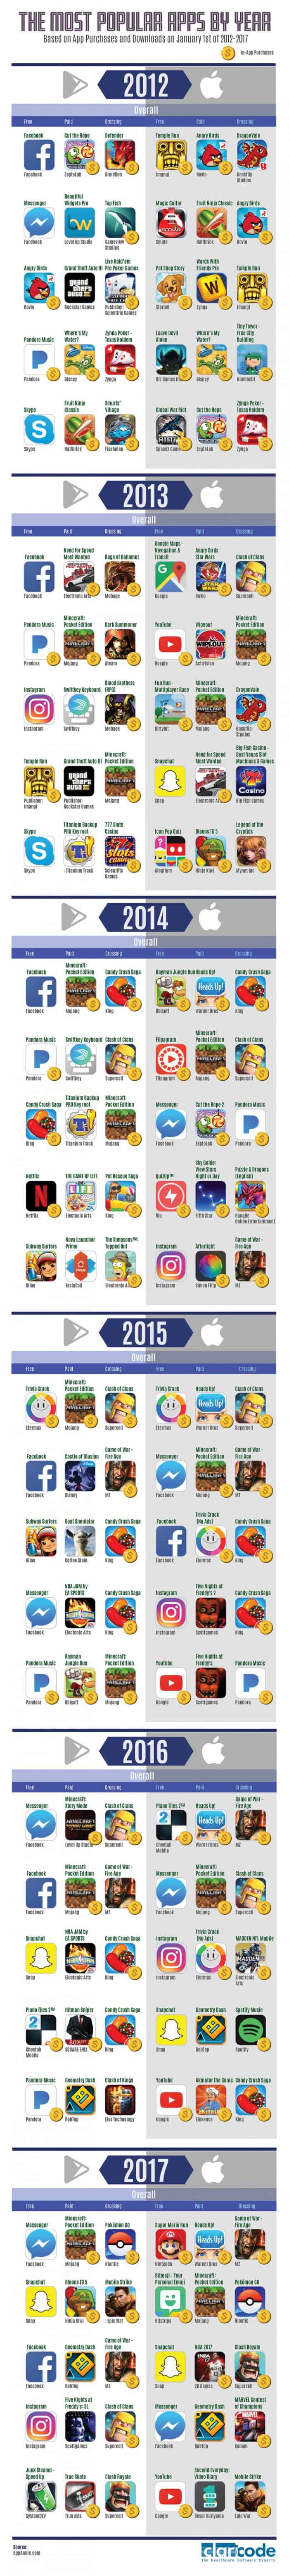 infographic describes the most popular smartphone apps from 2012 to 2017